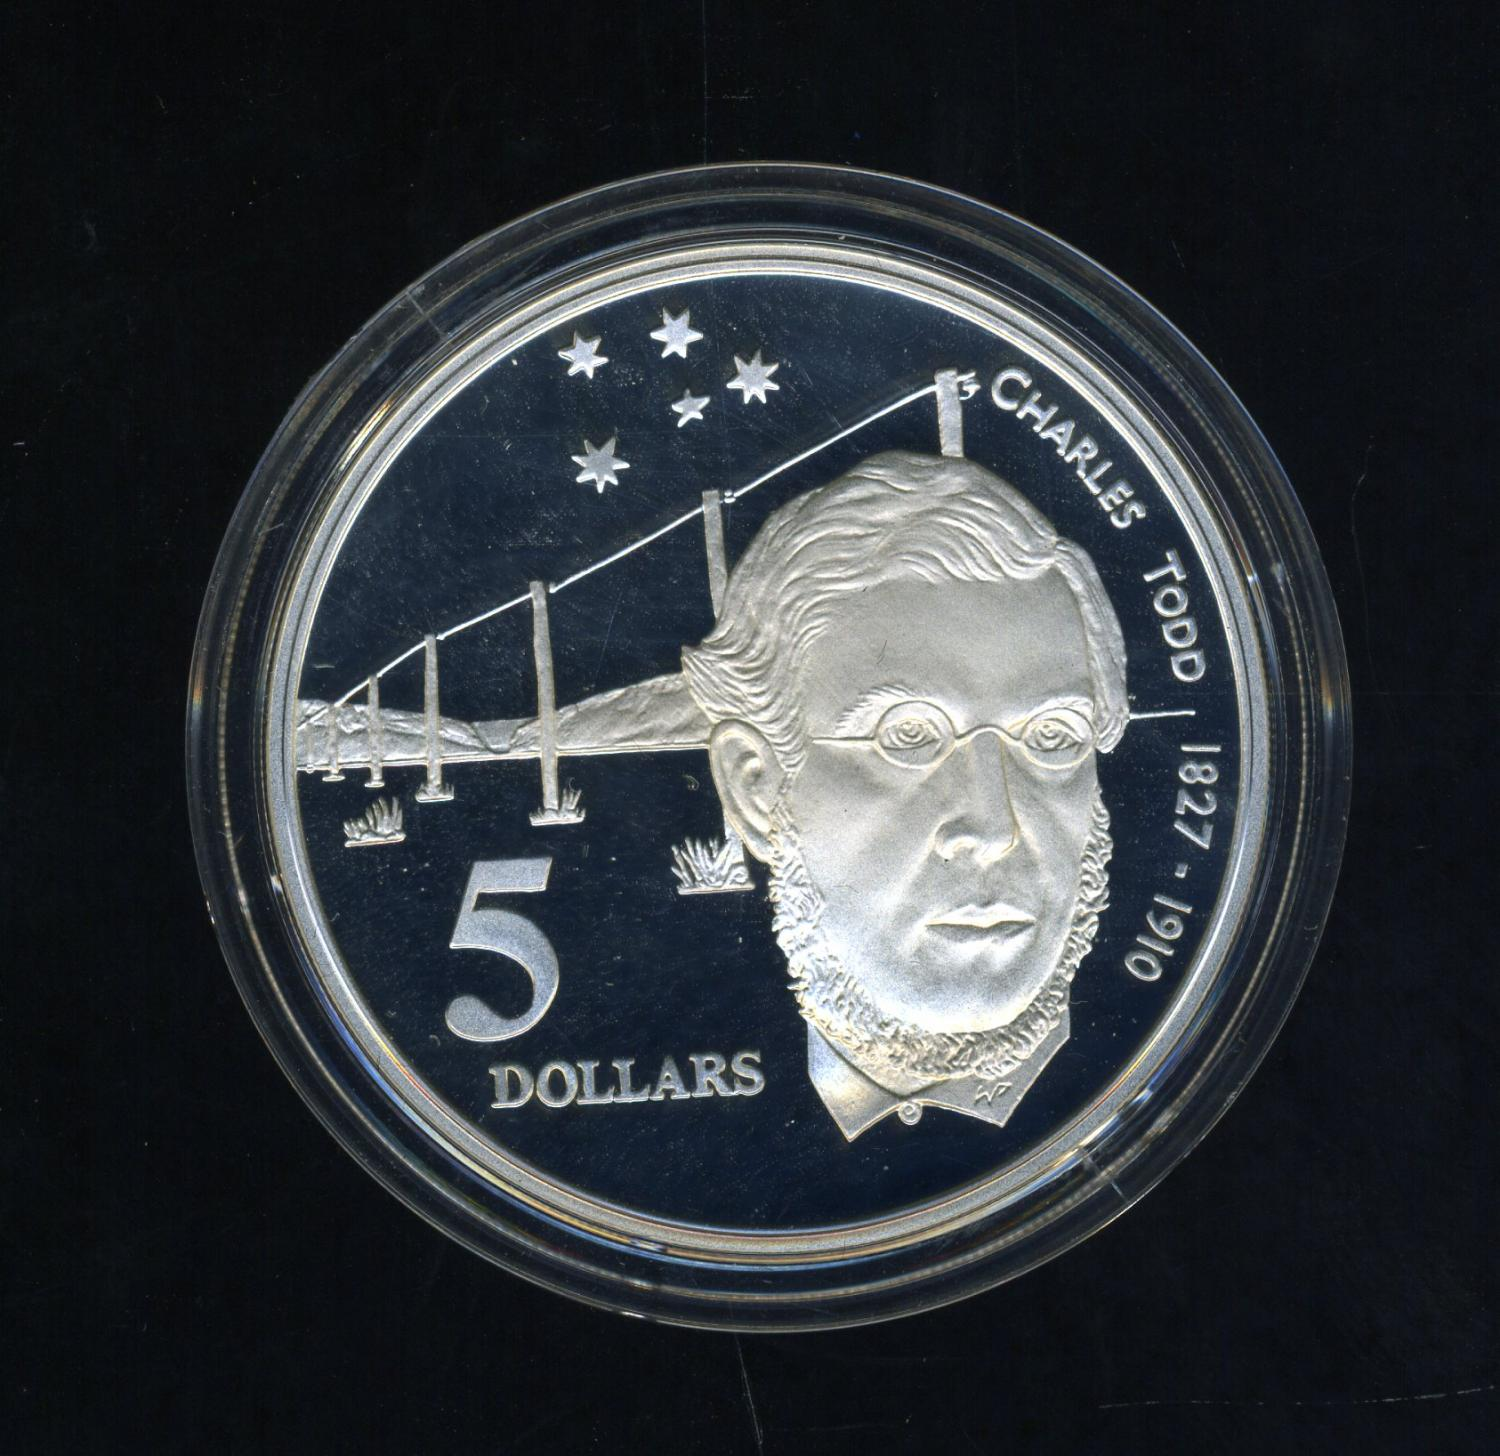 Thumbnail for 1995 $5.00 Silver Proof Coin in Capsule from Masterpieces in Silver Set - Charles Todd